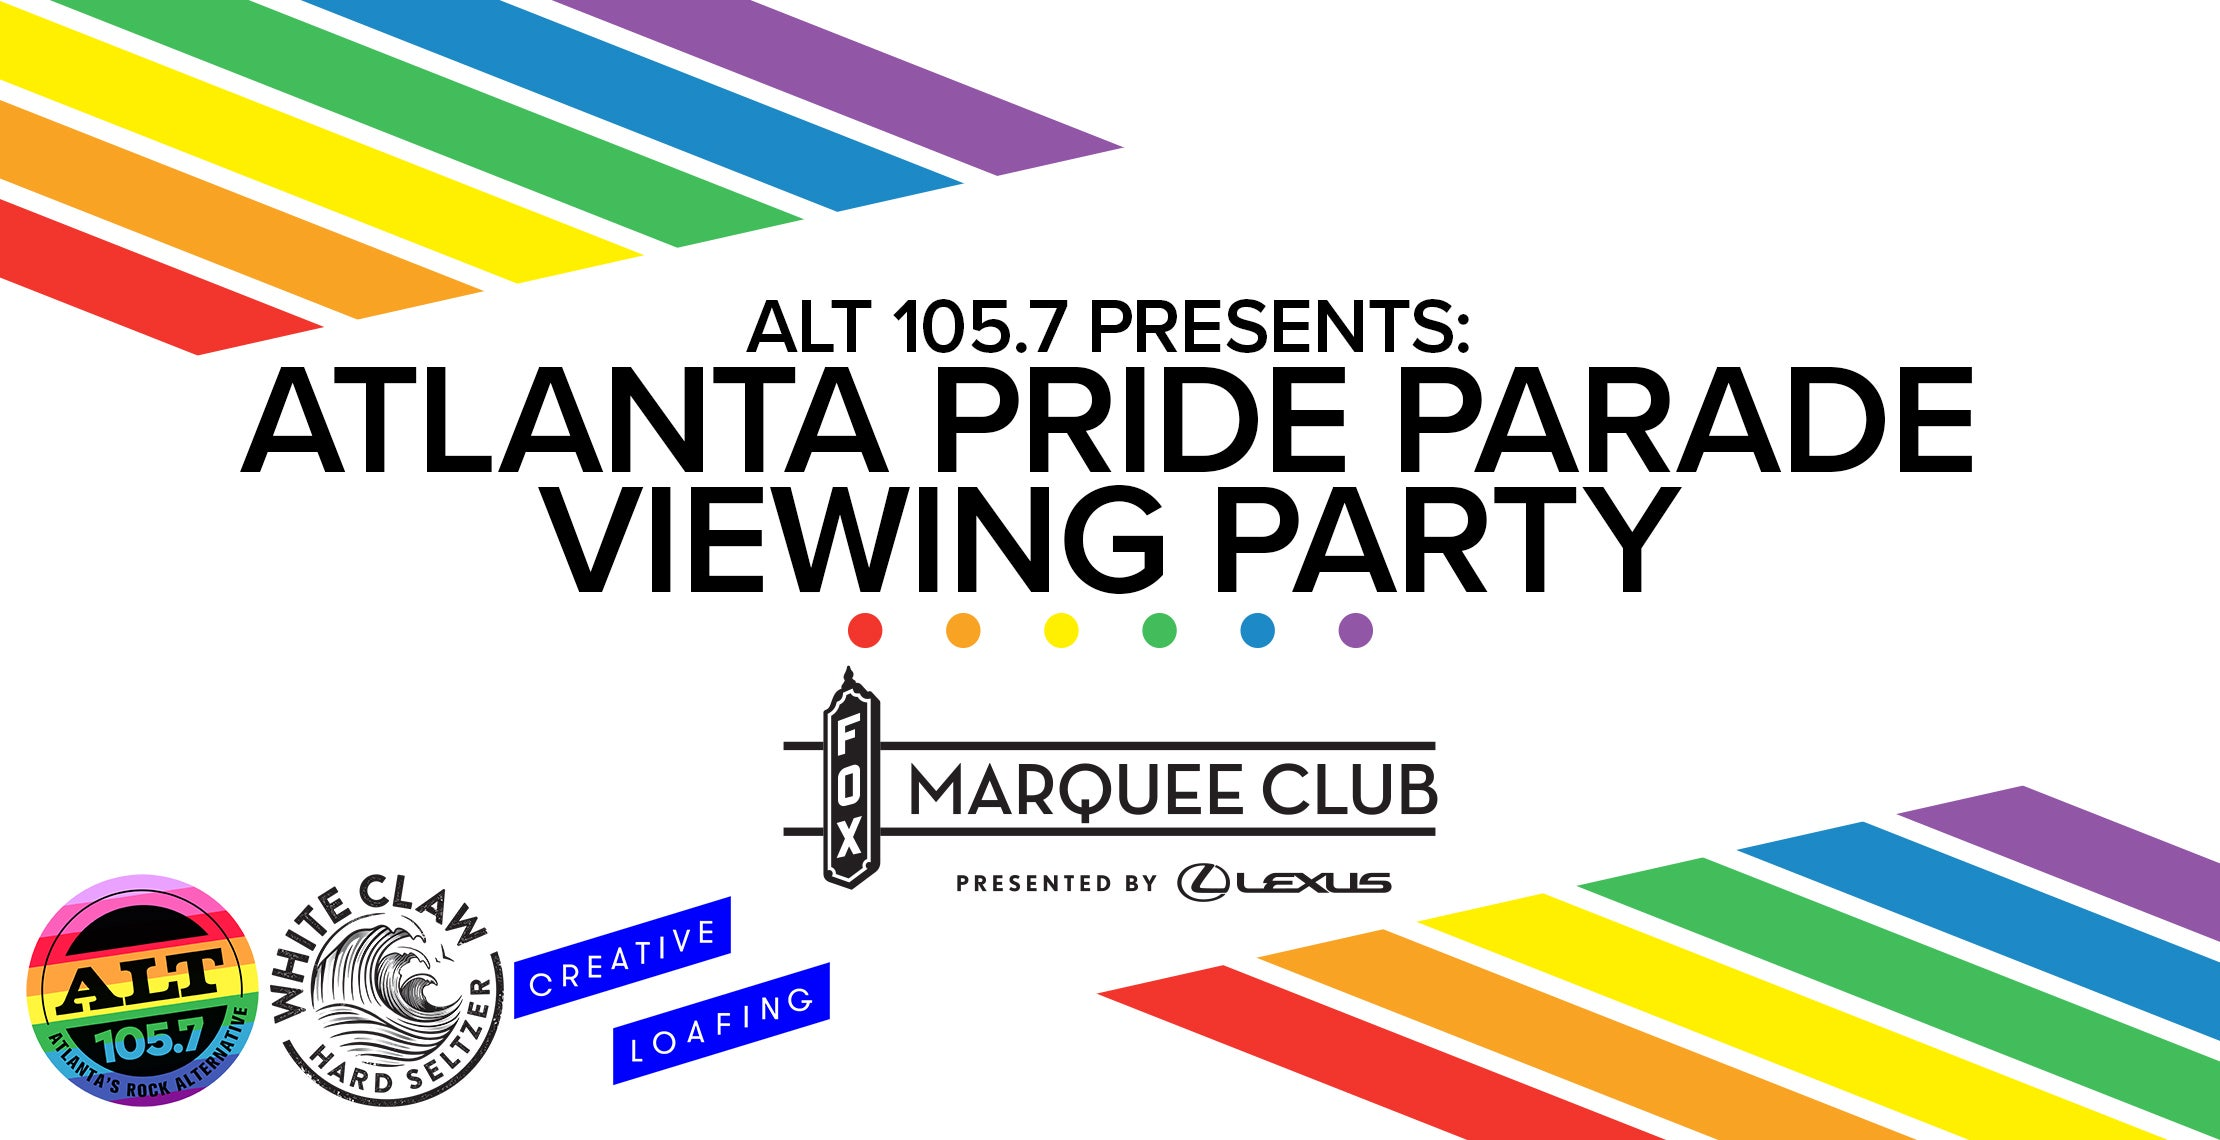 ALT 105.7 presents: Atlanta Pride Parade Viewing Party